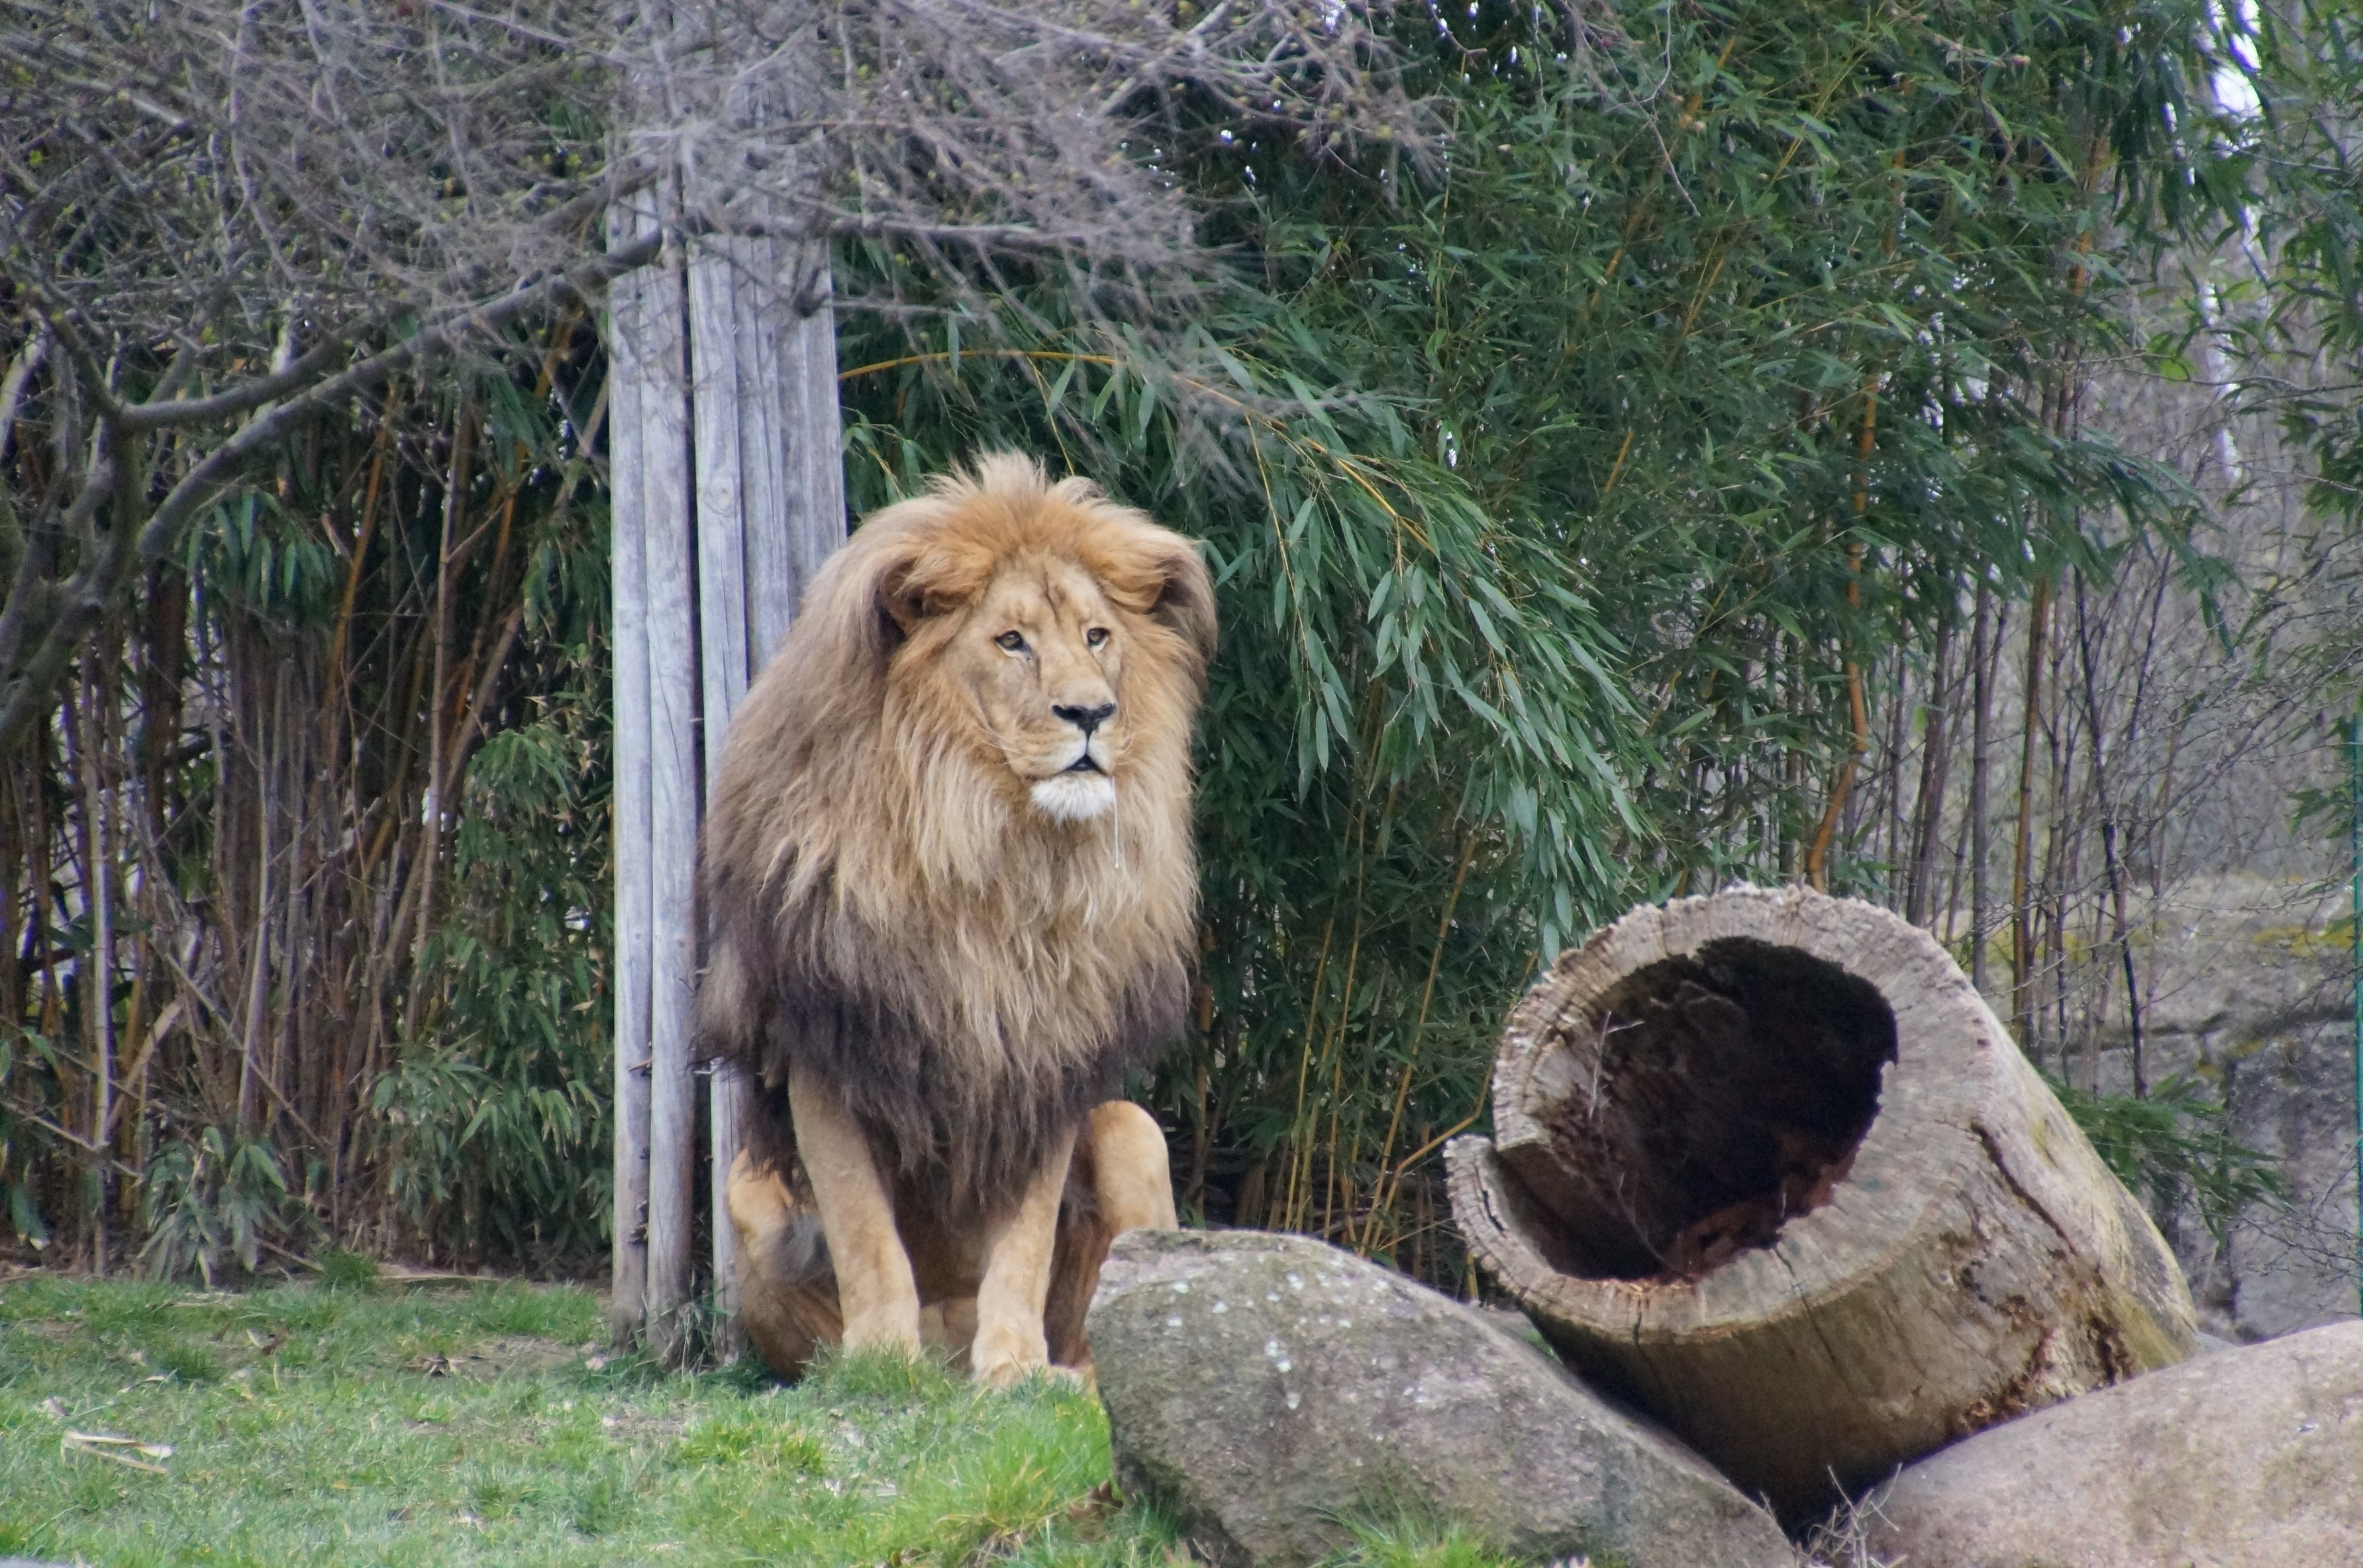 155263 download wallpaper Predator, Animals, Grass, Lion, Beast screensavers and pictures for free